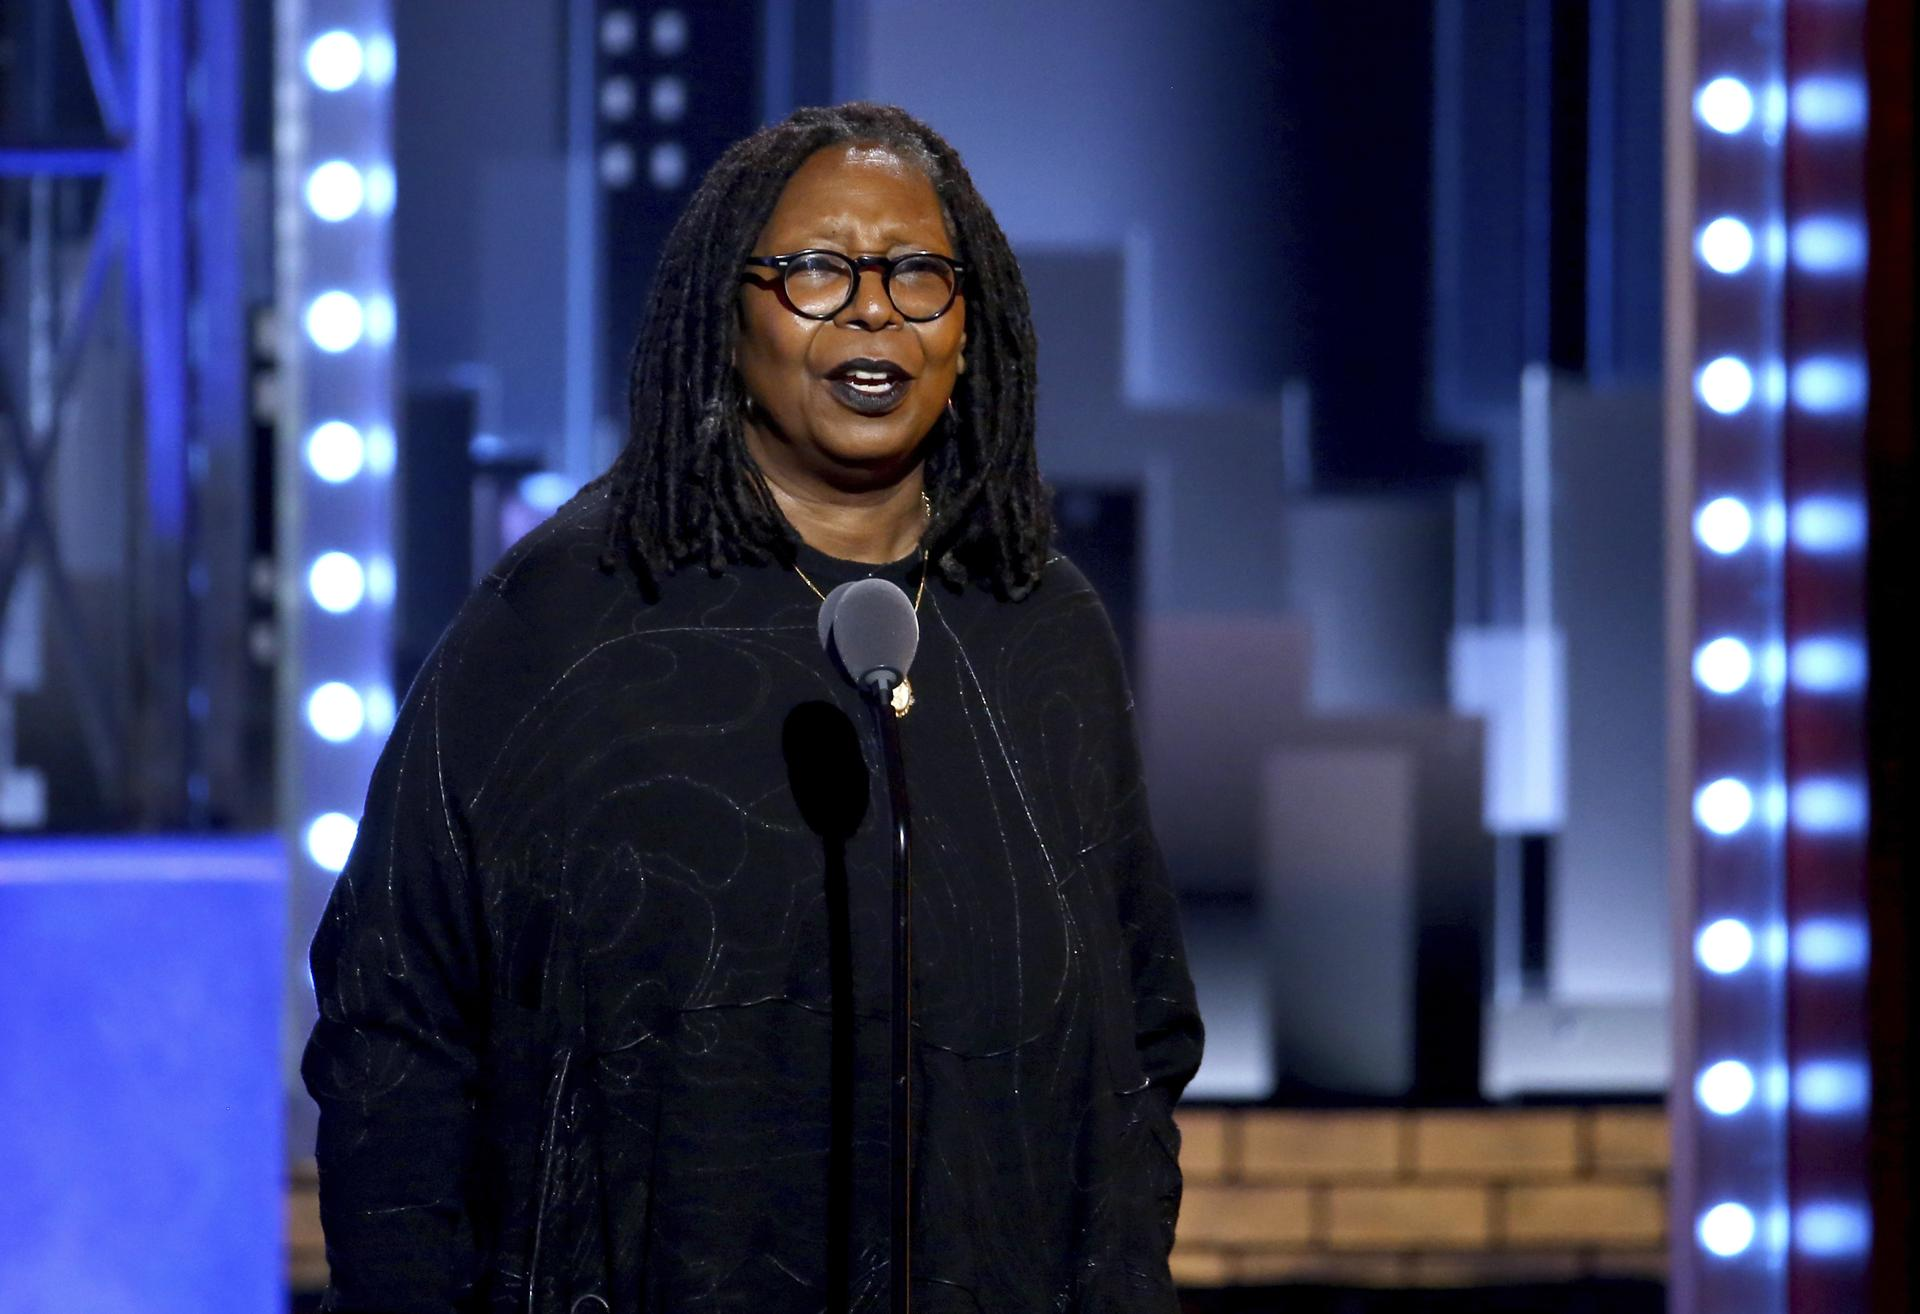 Whoopi Goldberg Performs At The 71st Annual Tony Awards On Sunday, June 11,  2017